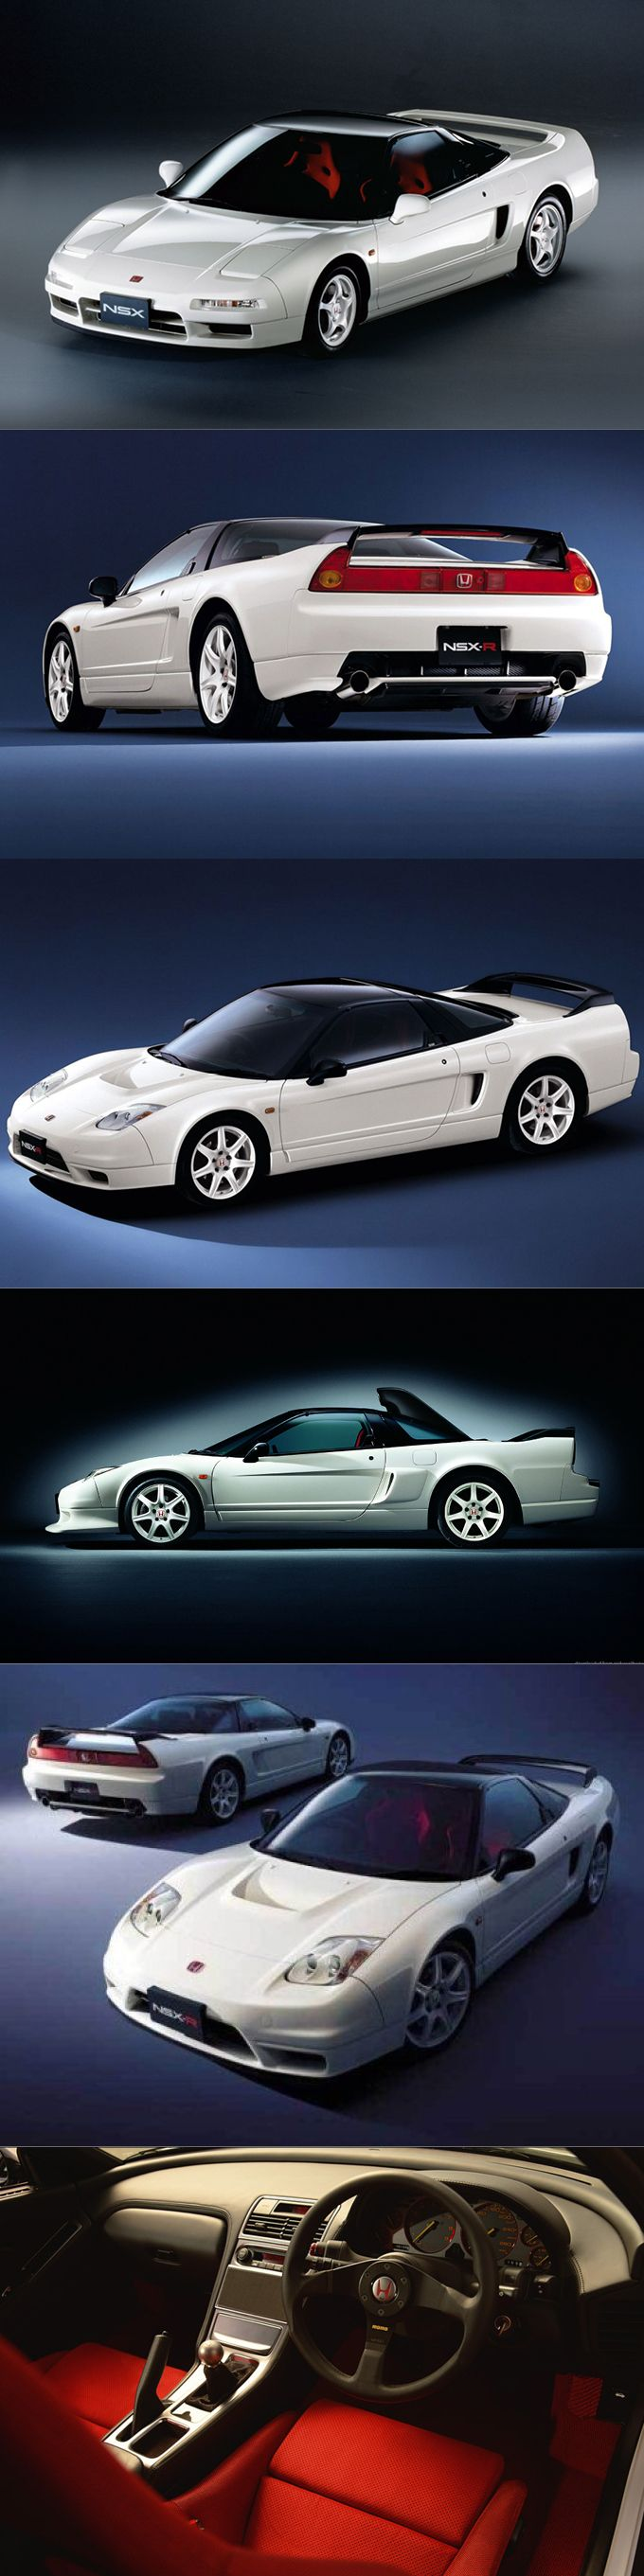 1990 Honda NSX / 1992 NSX-R / 2002 facelift / Japan / Type R / white red